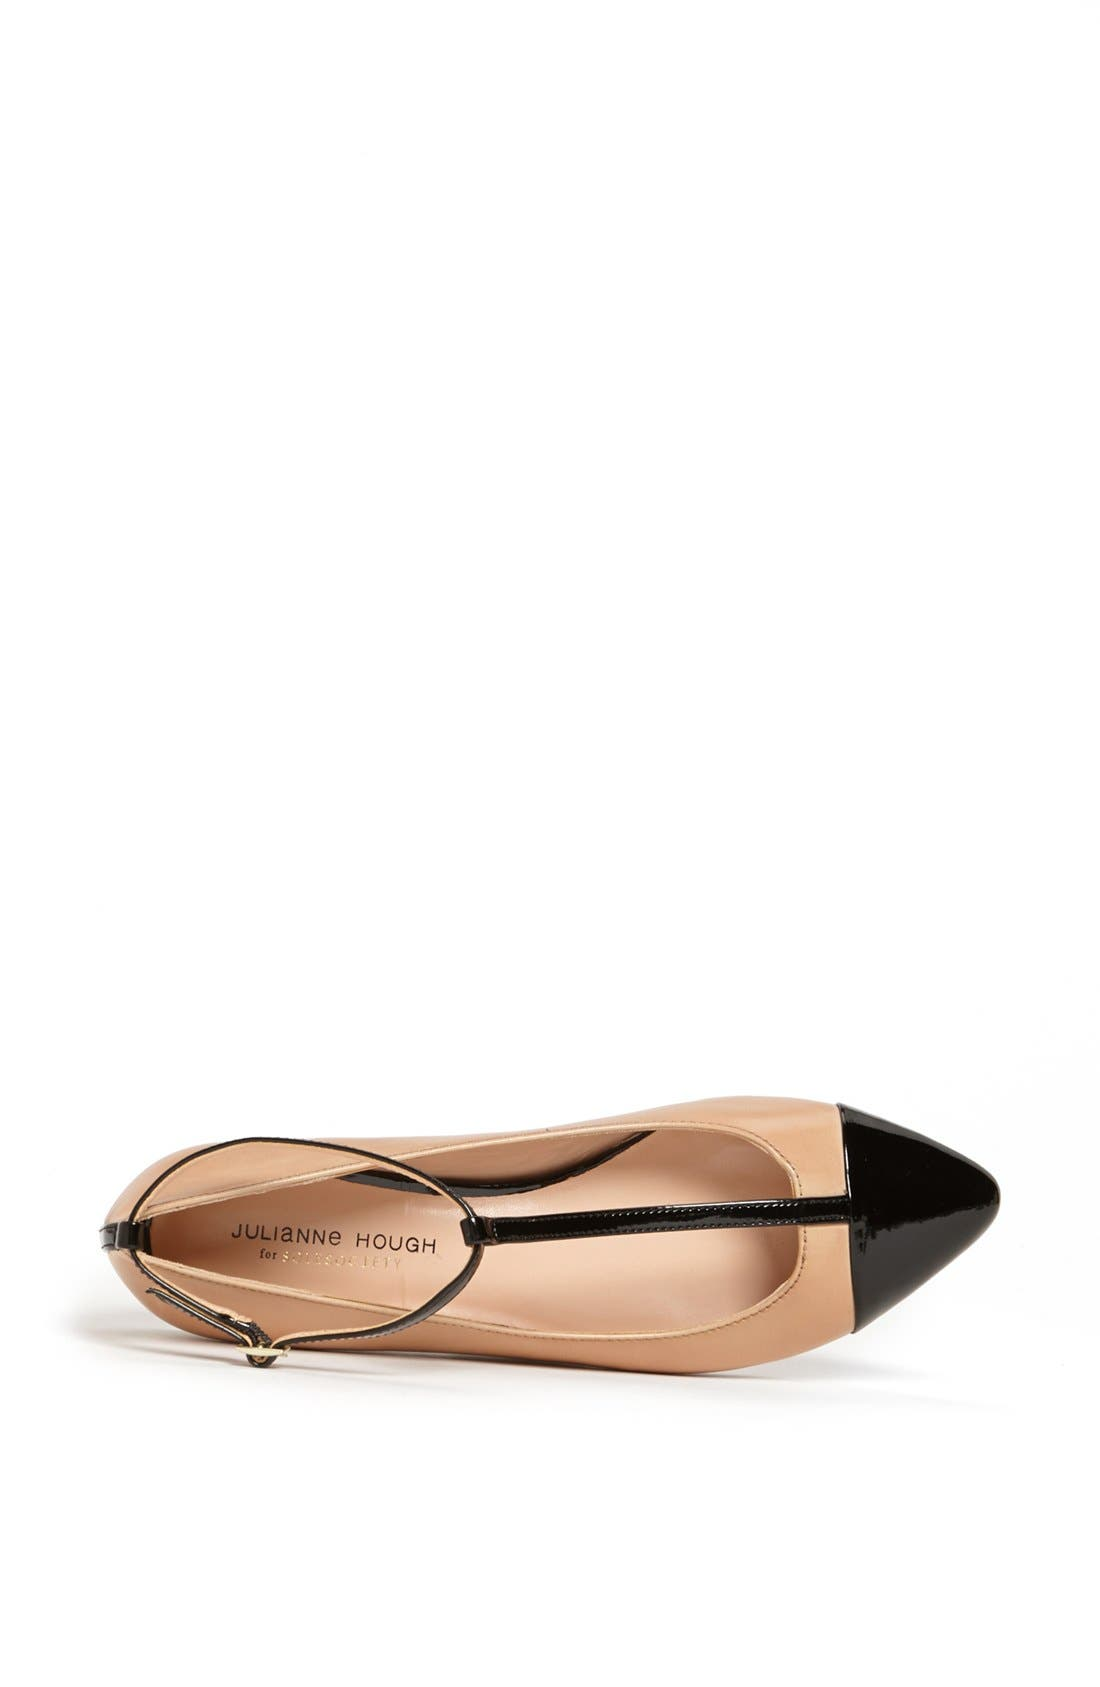 ,                             Julianne Hough for Sole Society 'Addy' Flat,                             Alternate thumbnail 22, color,                             251